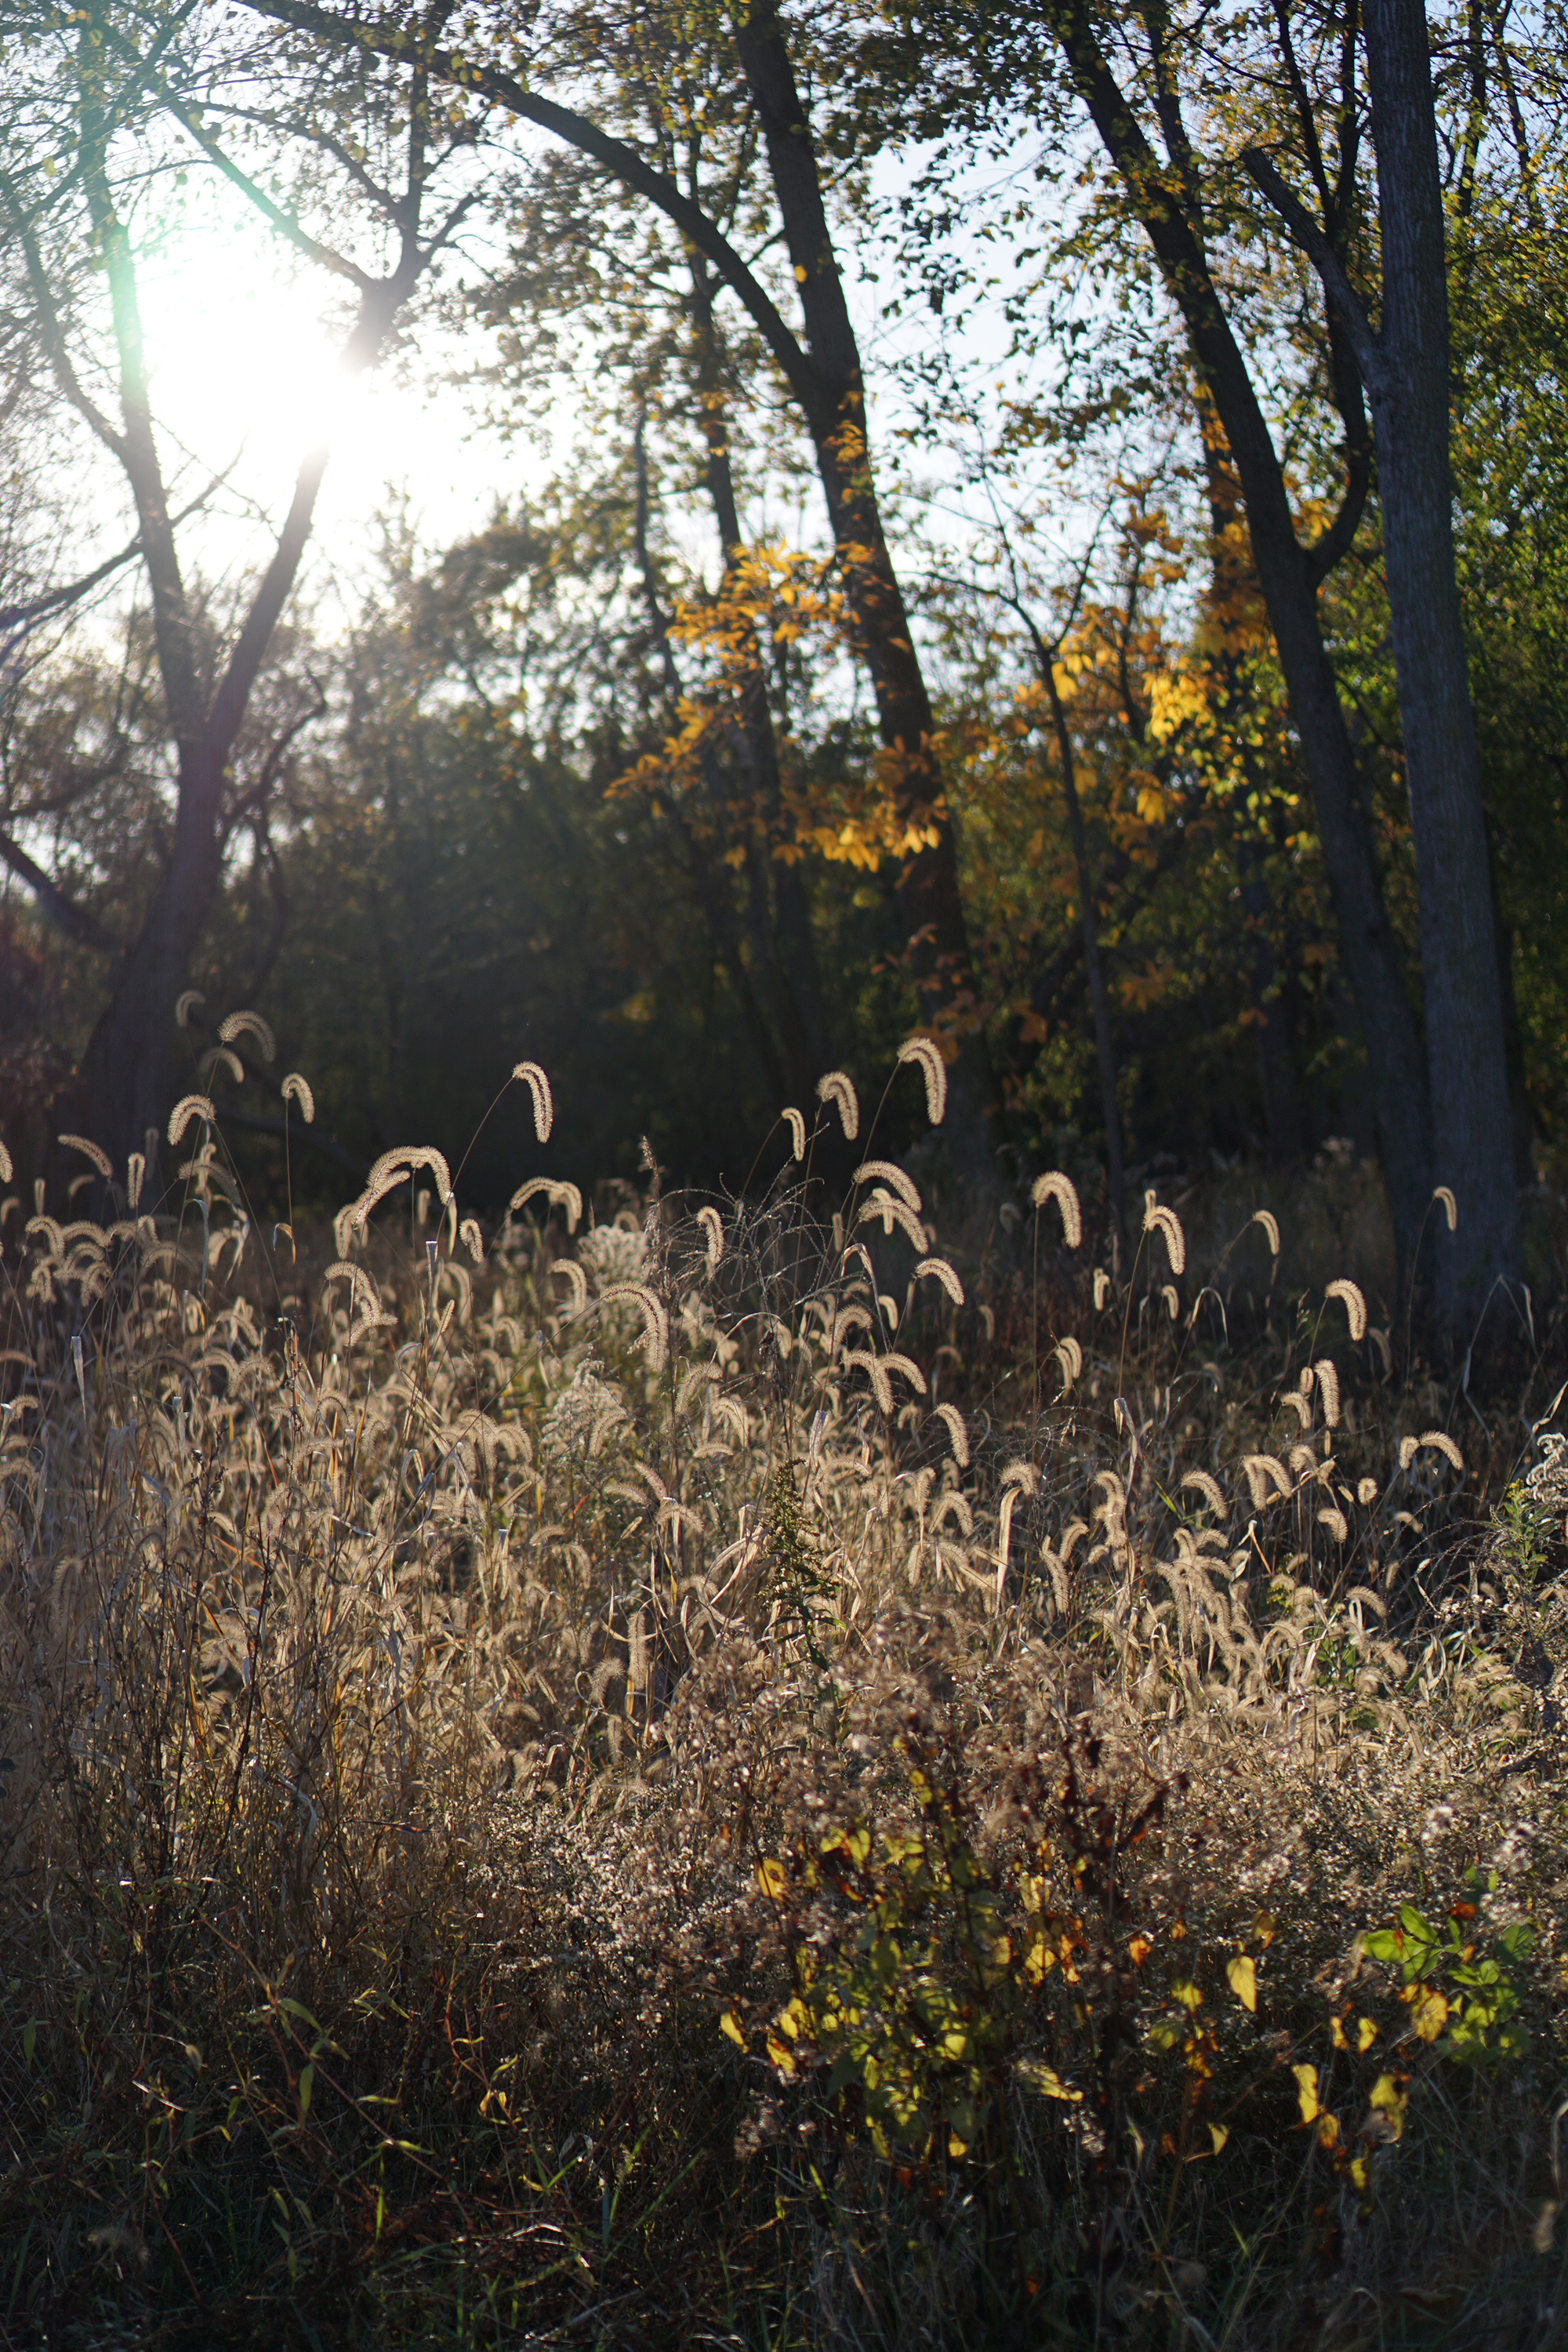 Feathery autumn grasses in the late afternoon light, Miami Woods, Morton Grove Illinois / Darker than Green